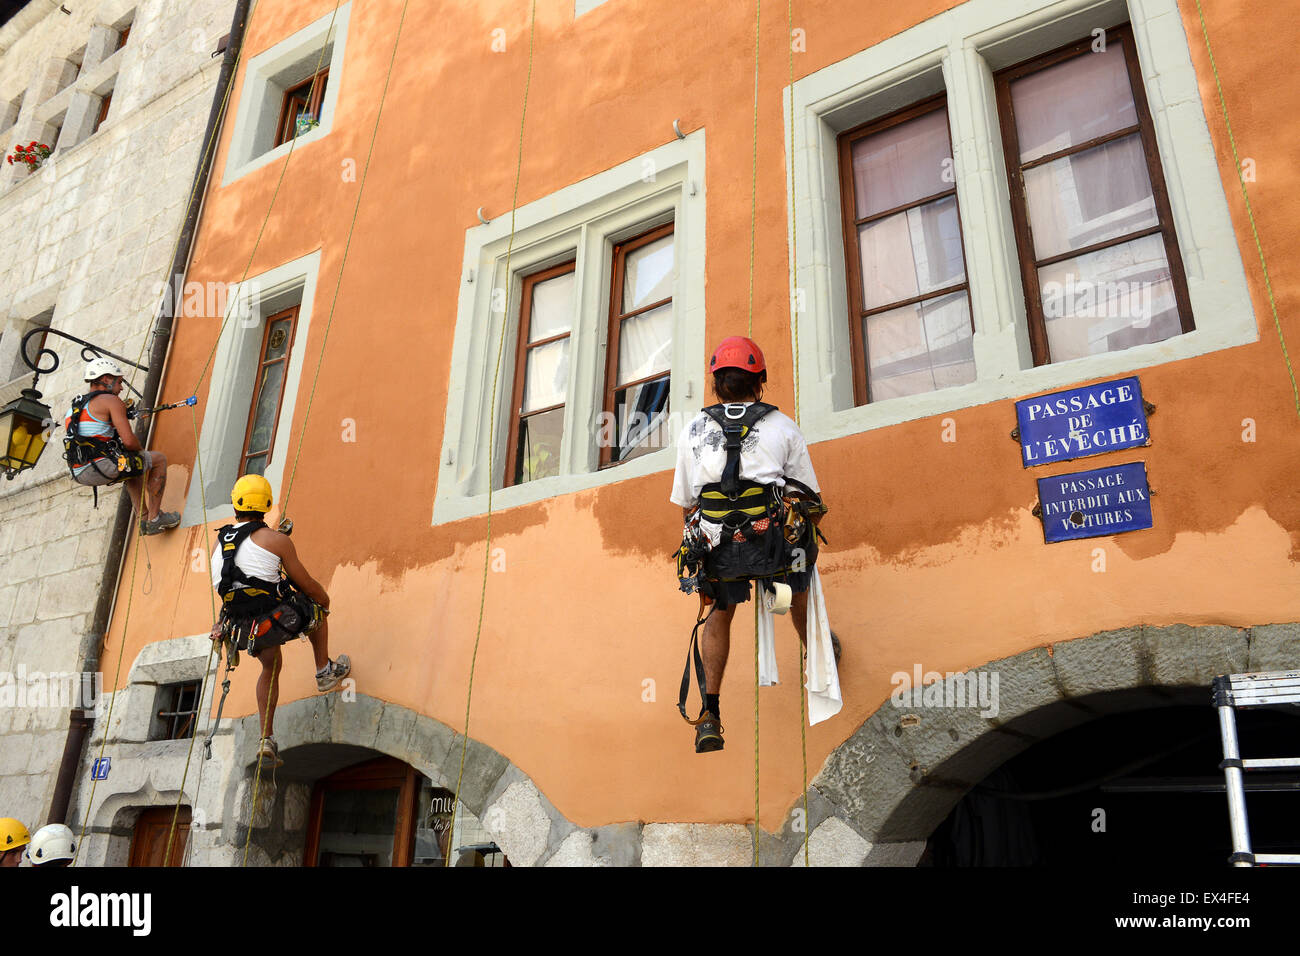 Painter painters suspended on ropes with abseil climbing harness painting the external wall of a building in Annecy - Stock Image